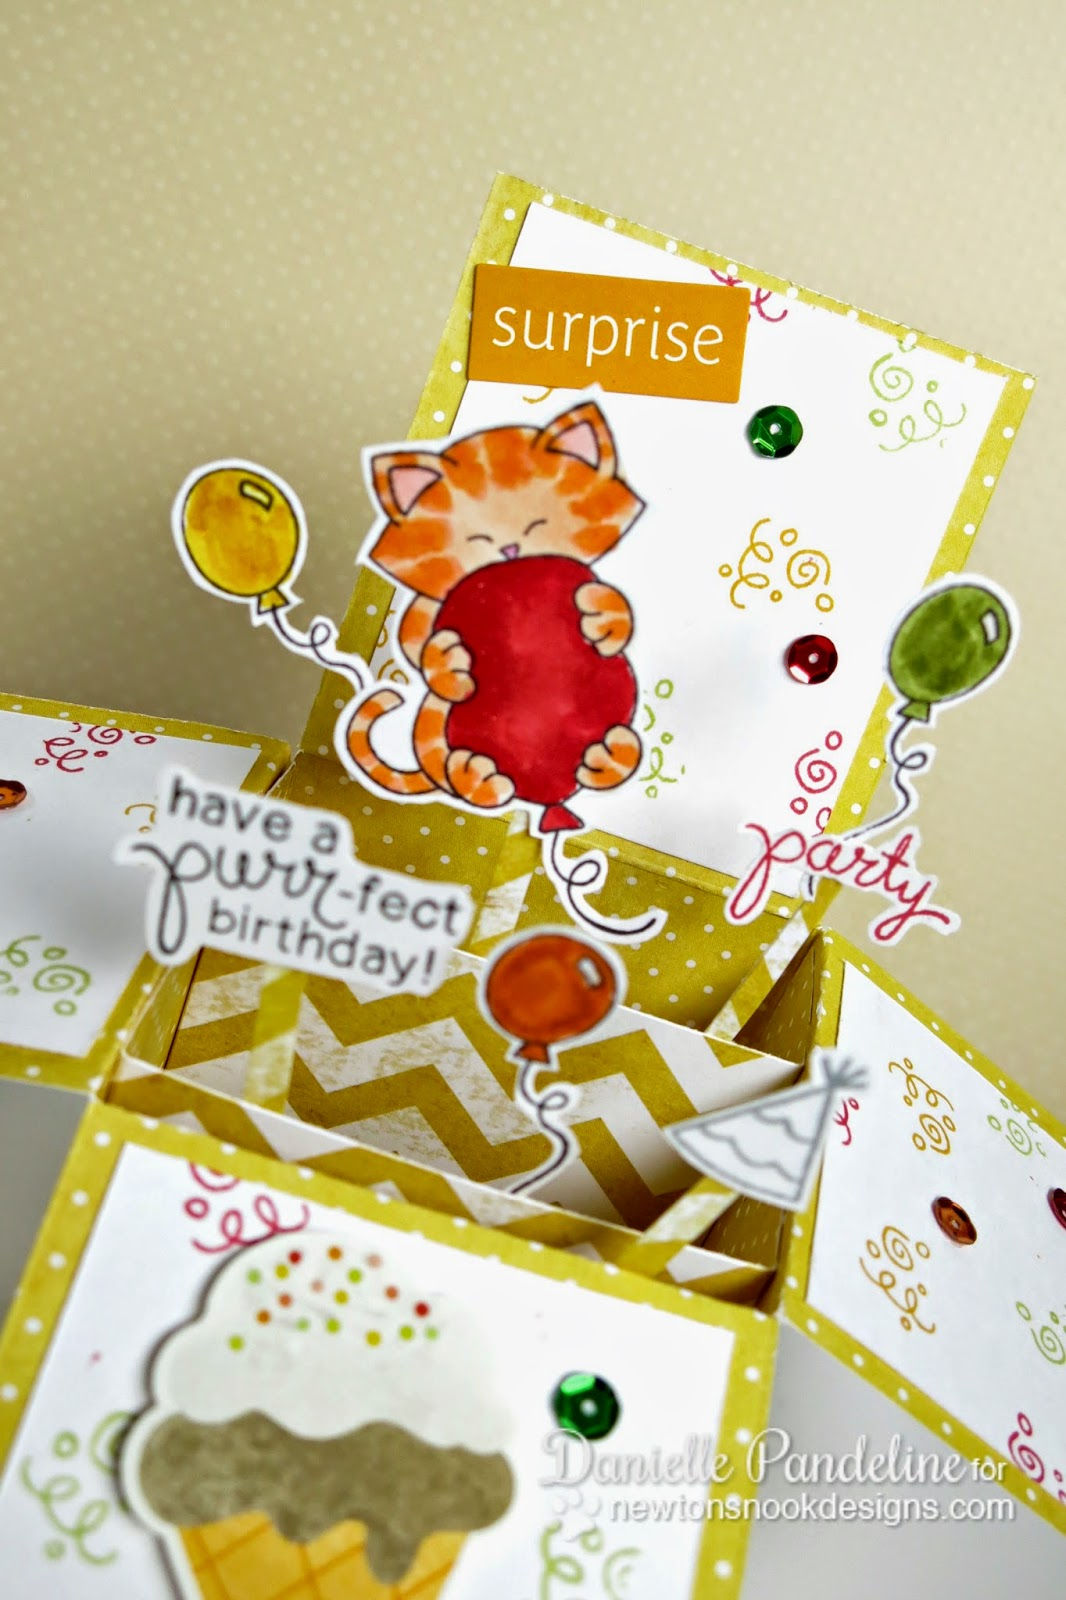 3D Birthday Card | Featuring Newton's Nook Designs | Created by Danielle Pandeline